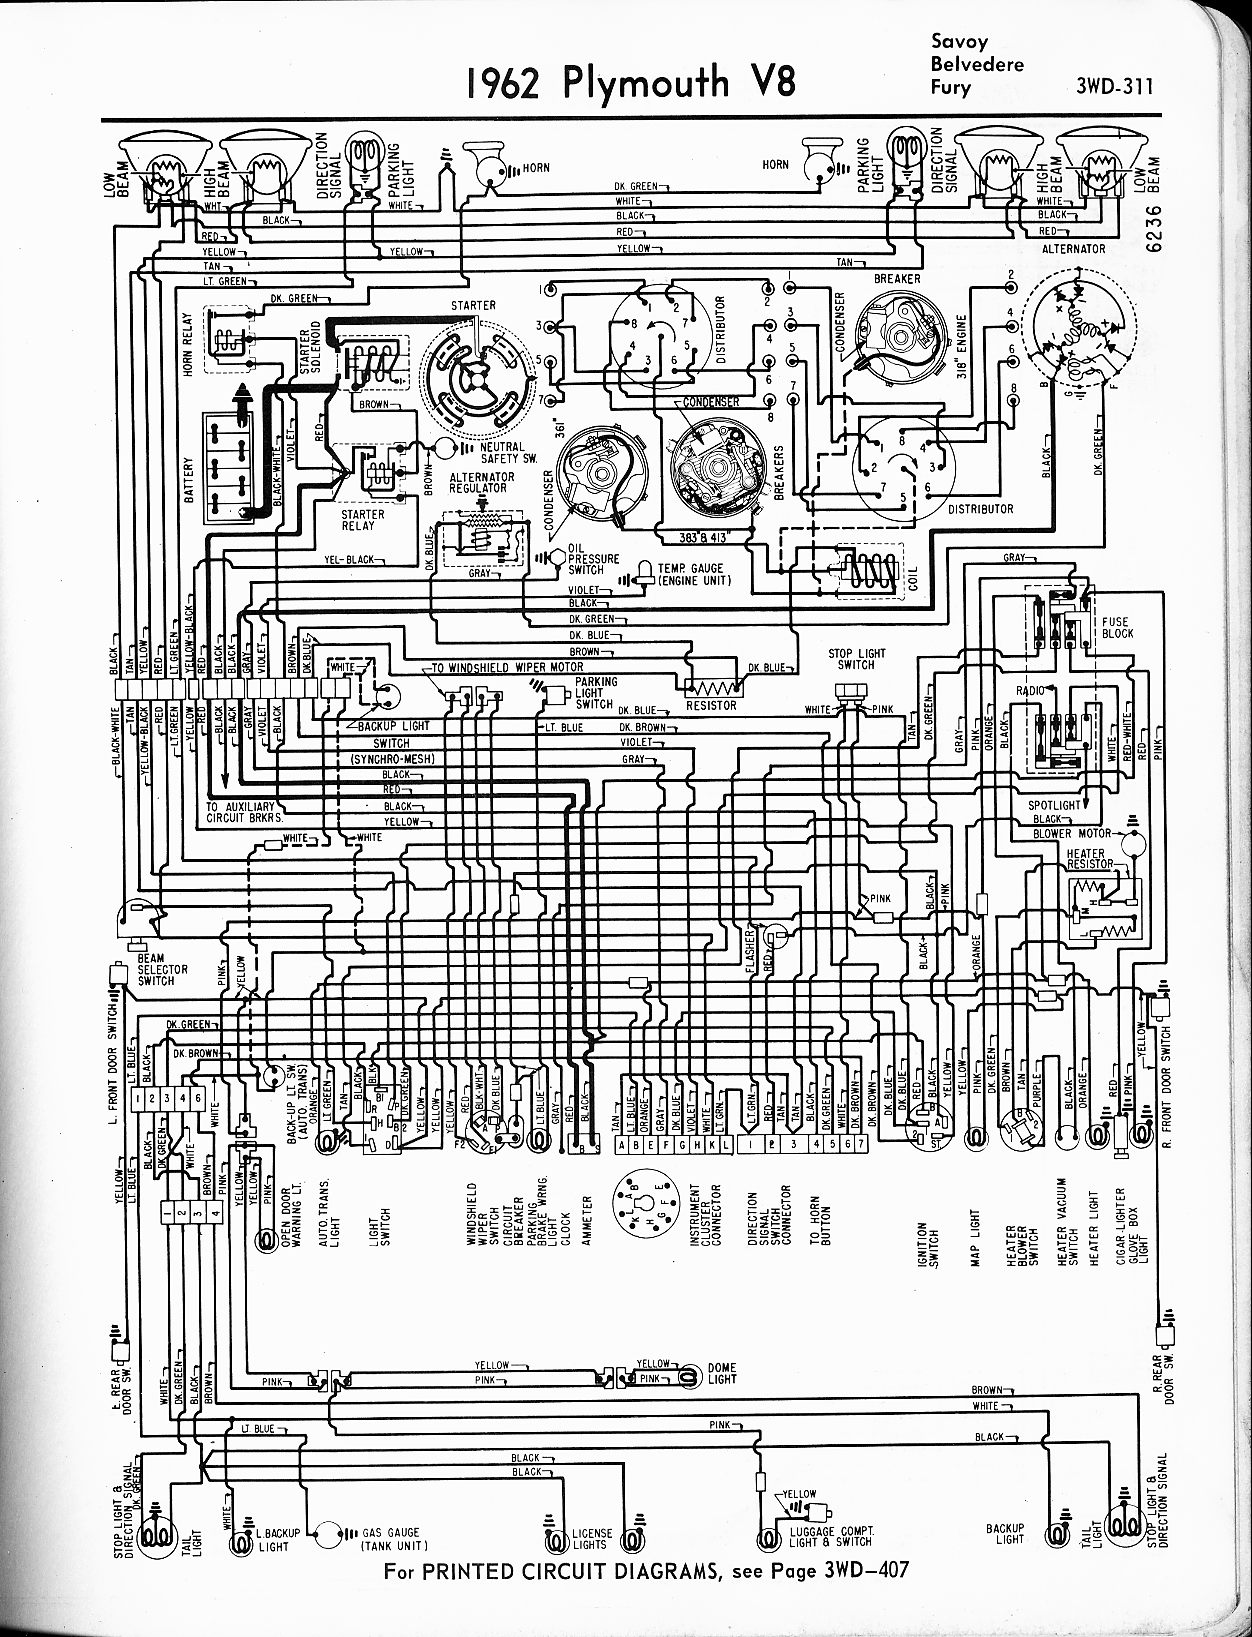 Transmission 62 Plymouth Wiring Diagram Free Download Testandmeasurement Transistoranddiodetester Mosfetcircuitups Example Electrical U2022 Rh Huntervalleyhotels Co